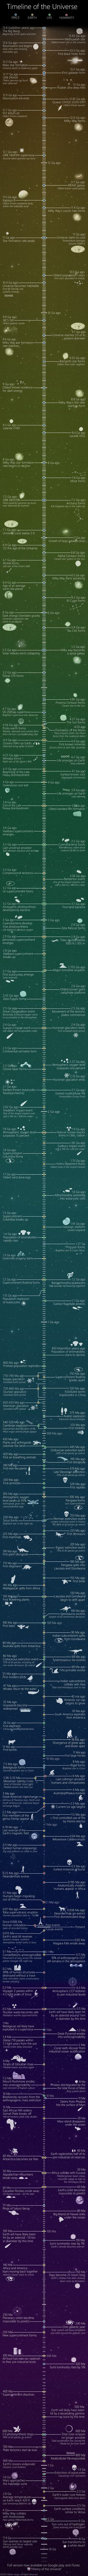 This timeline shows the entire history of the Universe, and where it's headed…